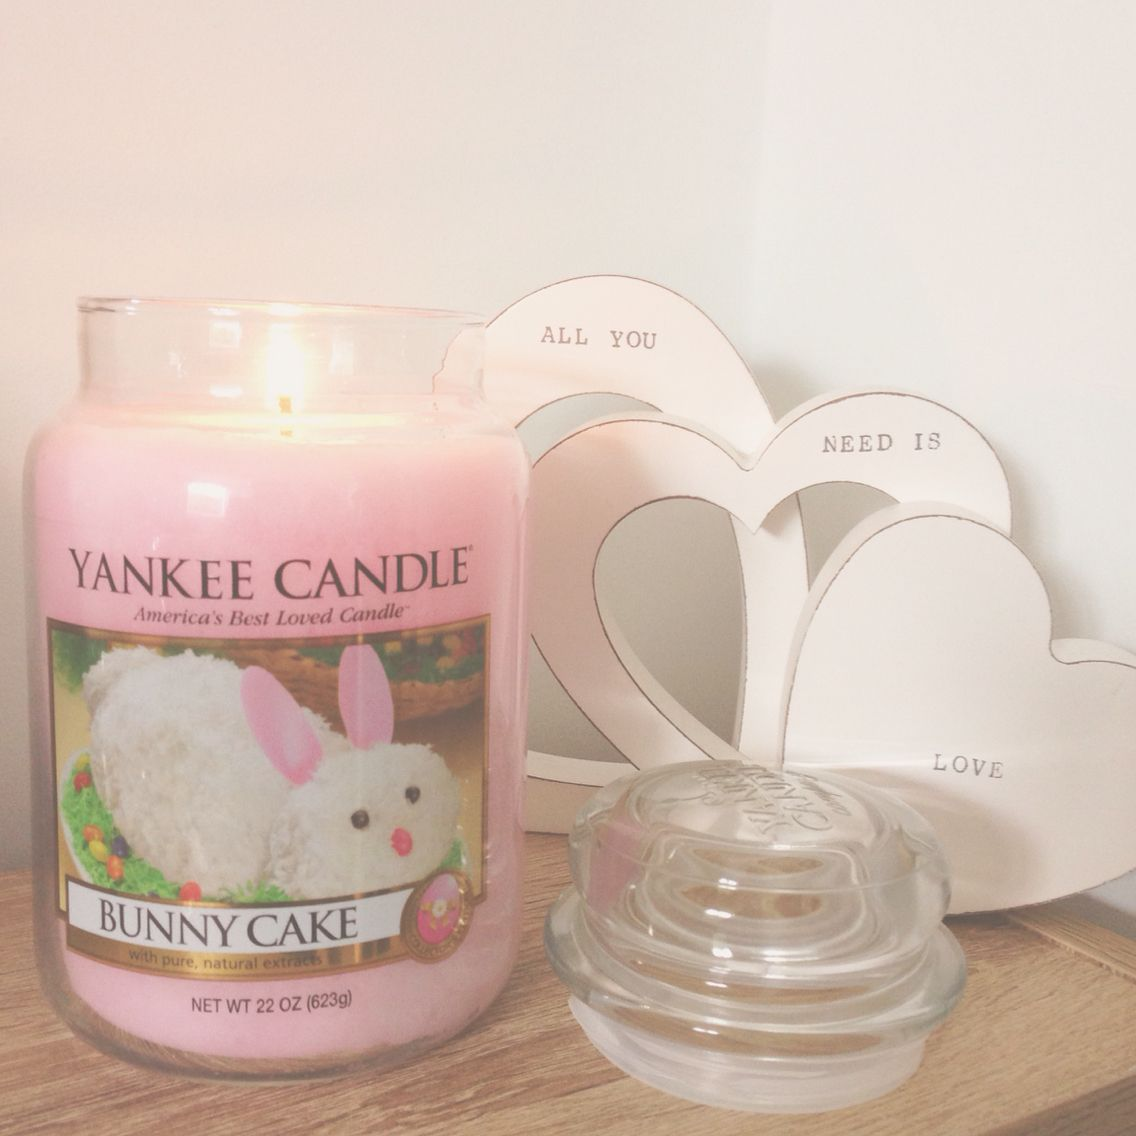 Bunny cake largejar bunny cake best candles yankee candle